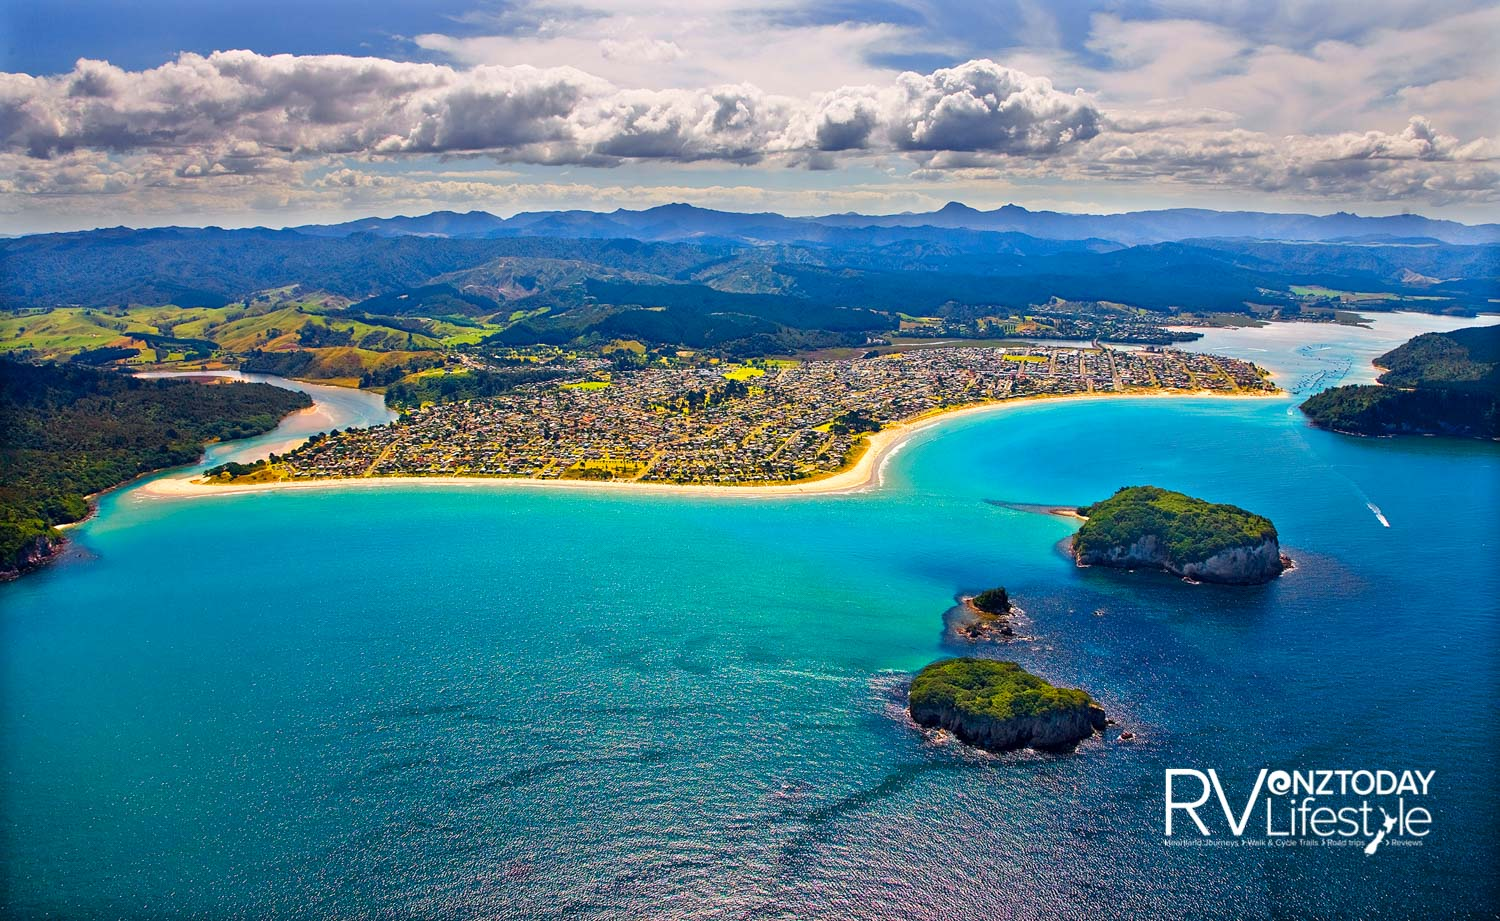 There are white-sand beaches, great surf breaks and islands to explore. Photo credit: thecoromandel.com